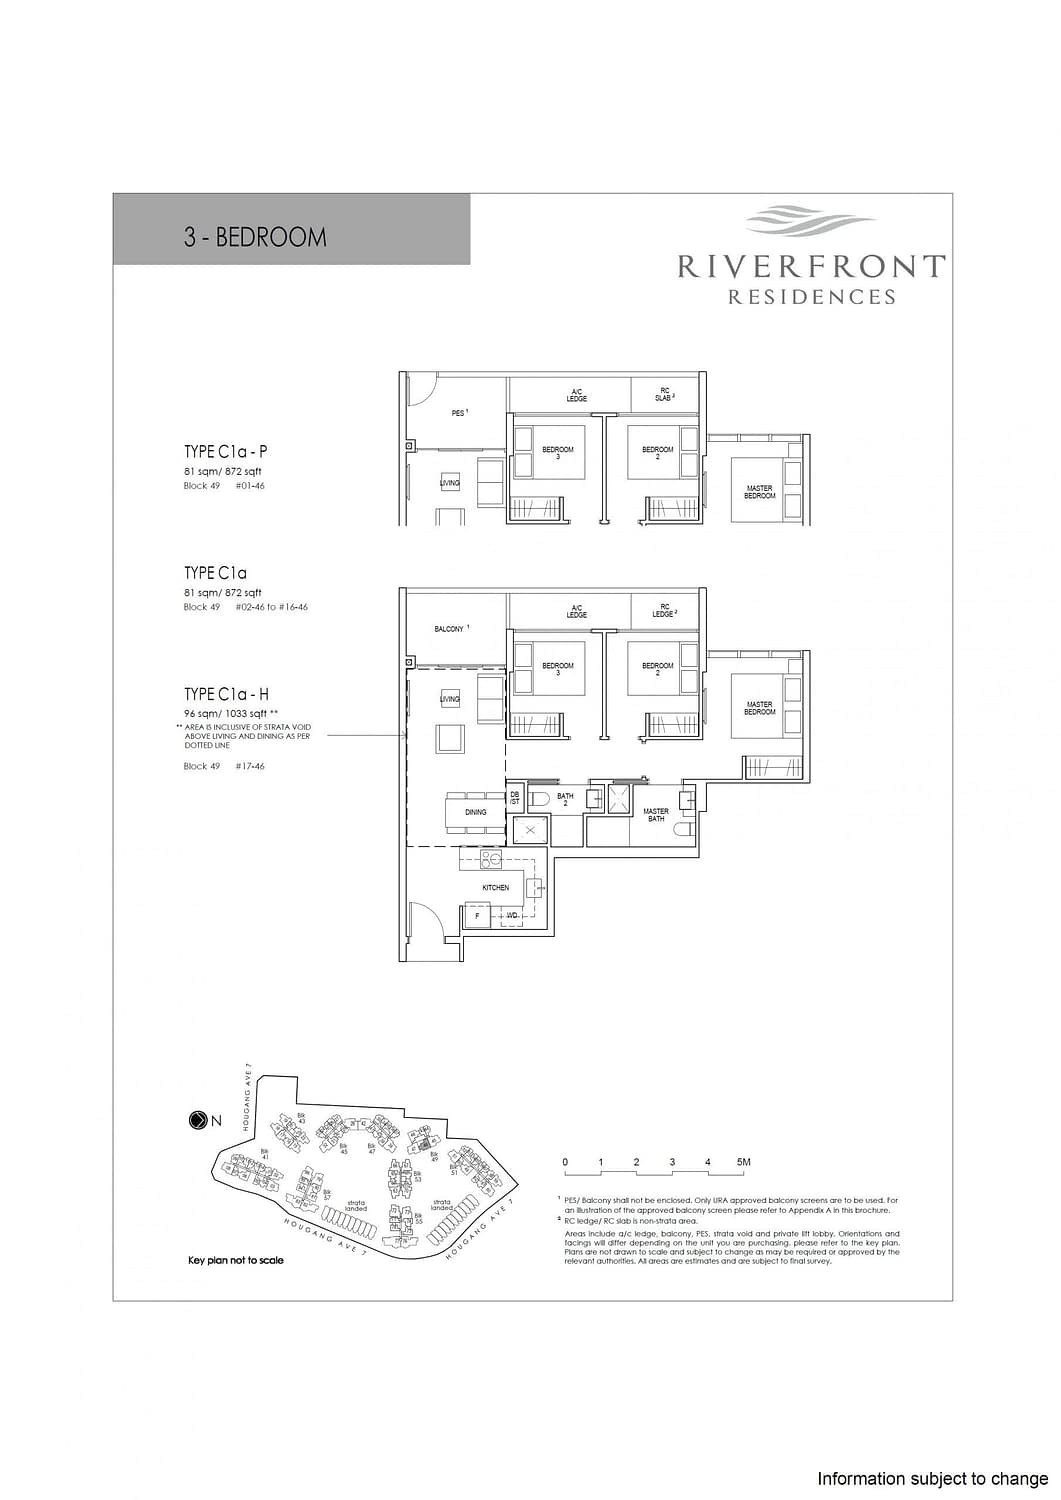 Riverfront Residences Riverfront Residences Floorplan C1a scaled